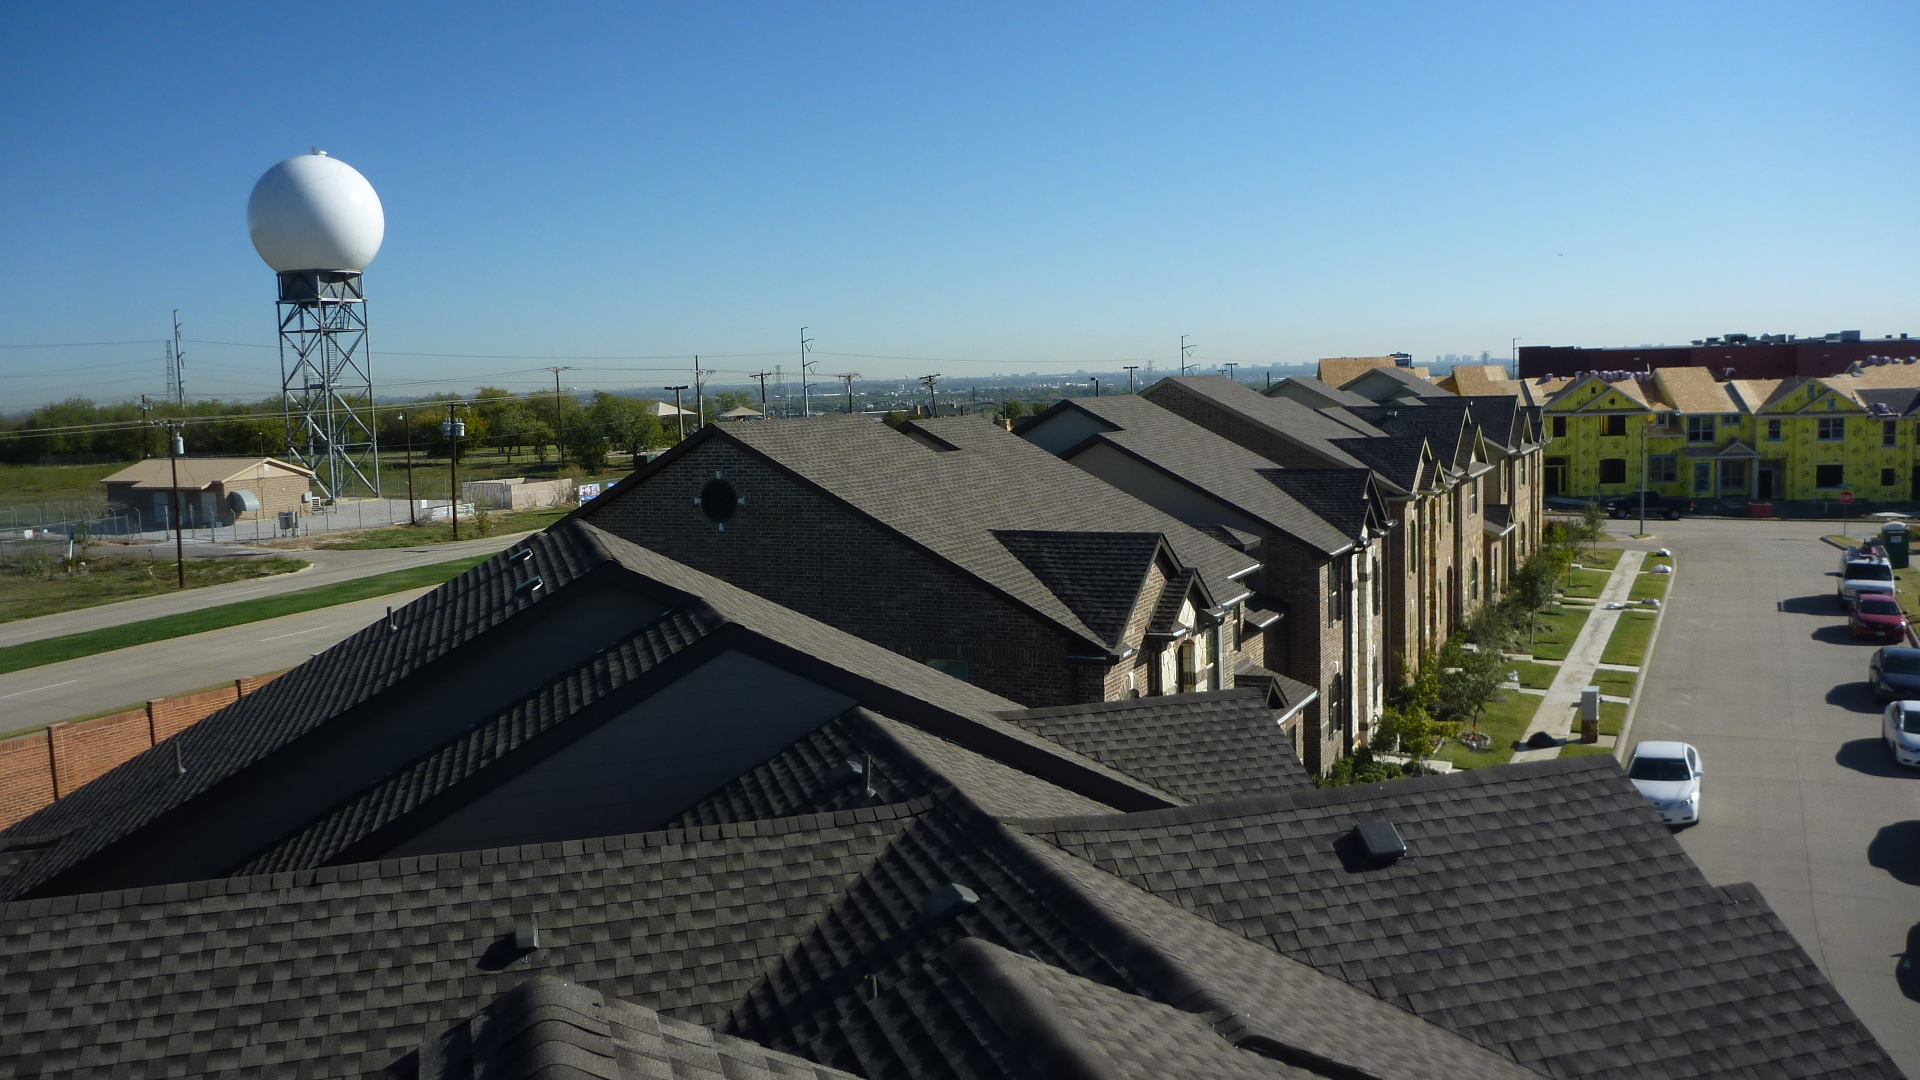 Commercial houses ametex roofing waco texas